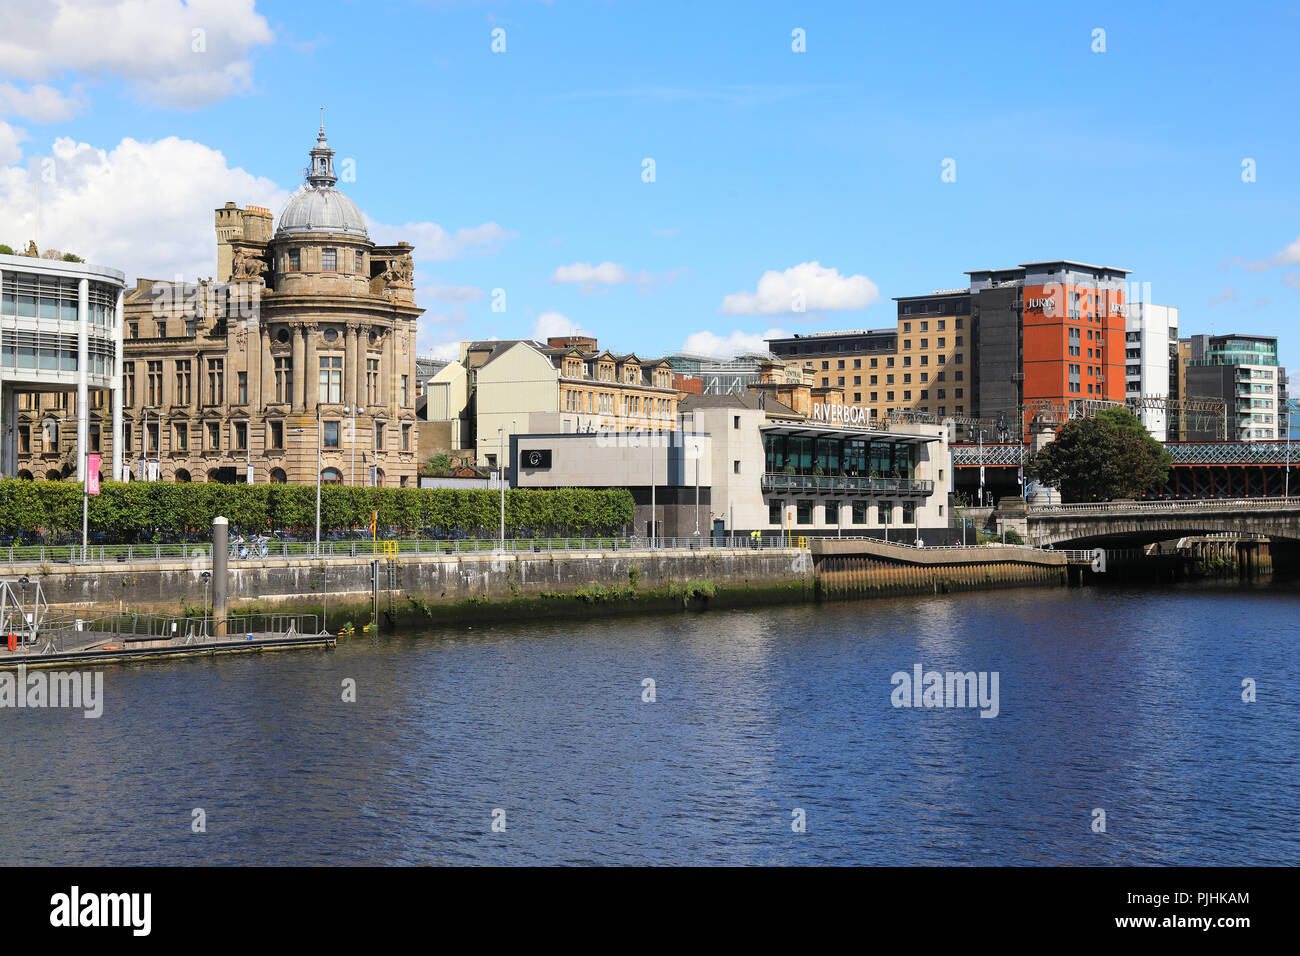 The towpath and north side of the River Clyde in central Glasgow, UK - Stock Image